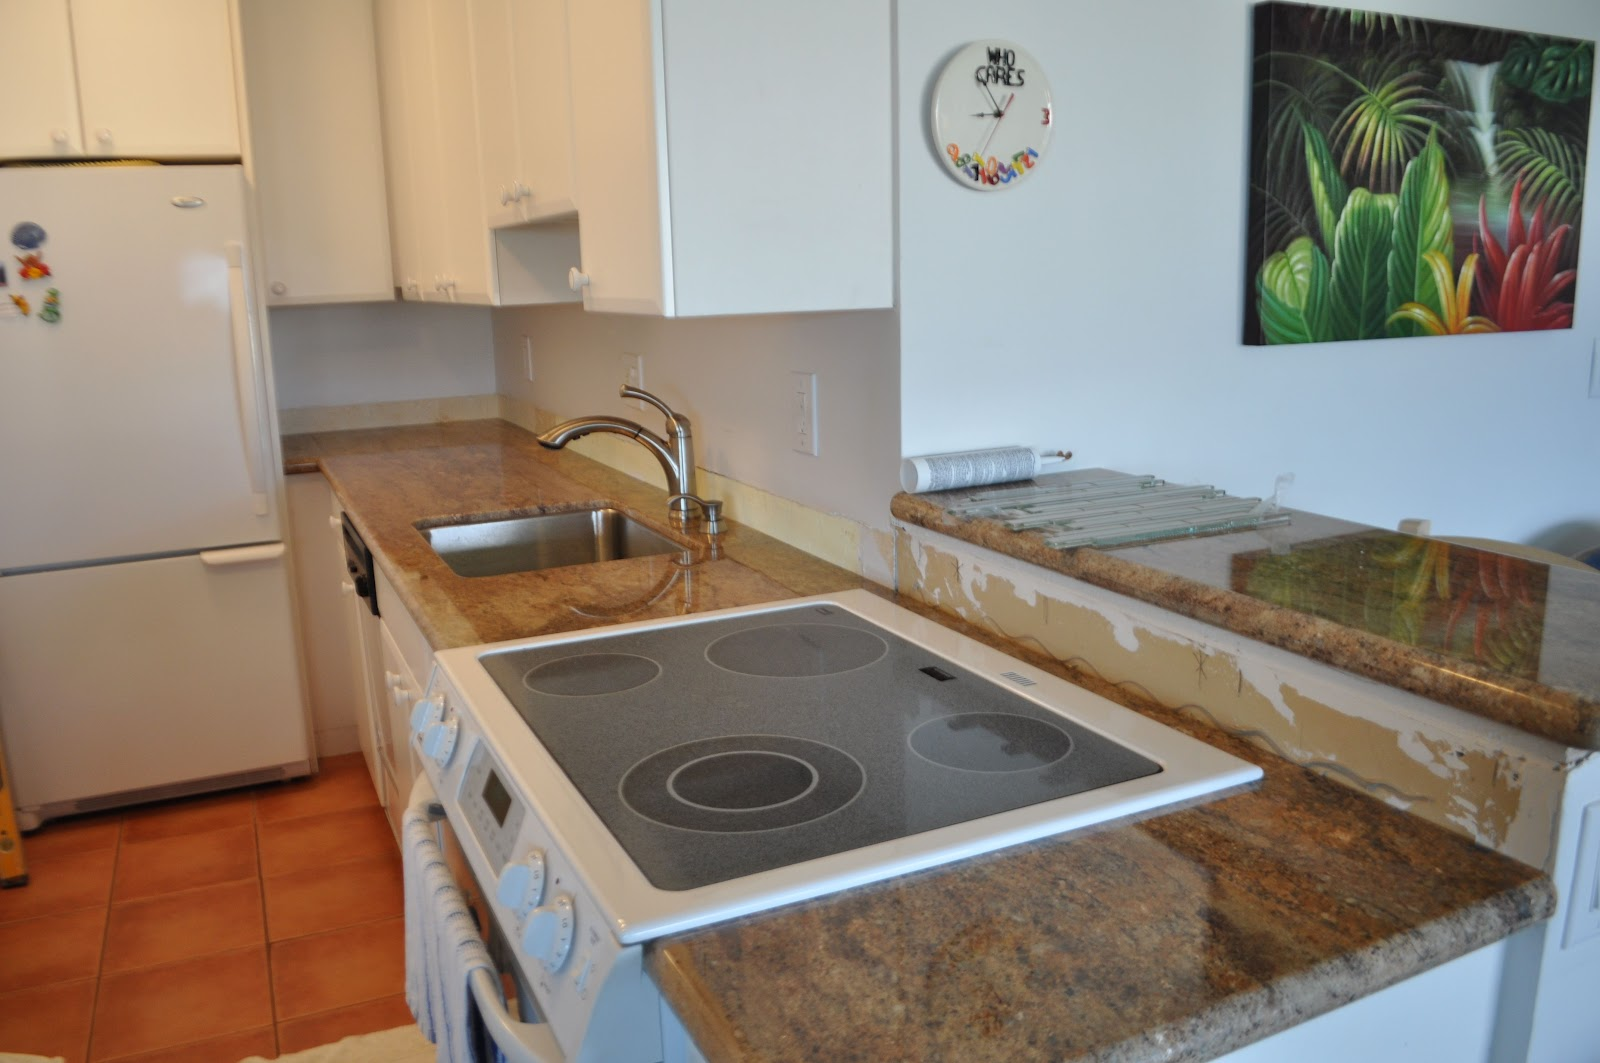 The charming How to install kitchen backsplash picture image